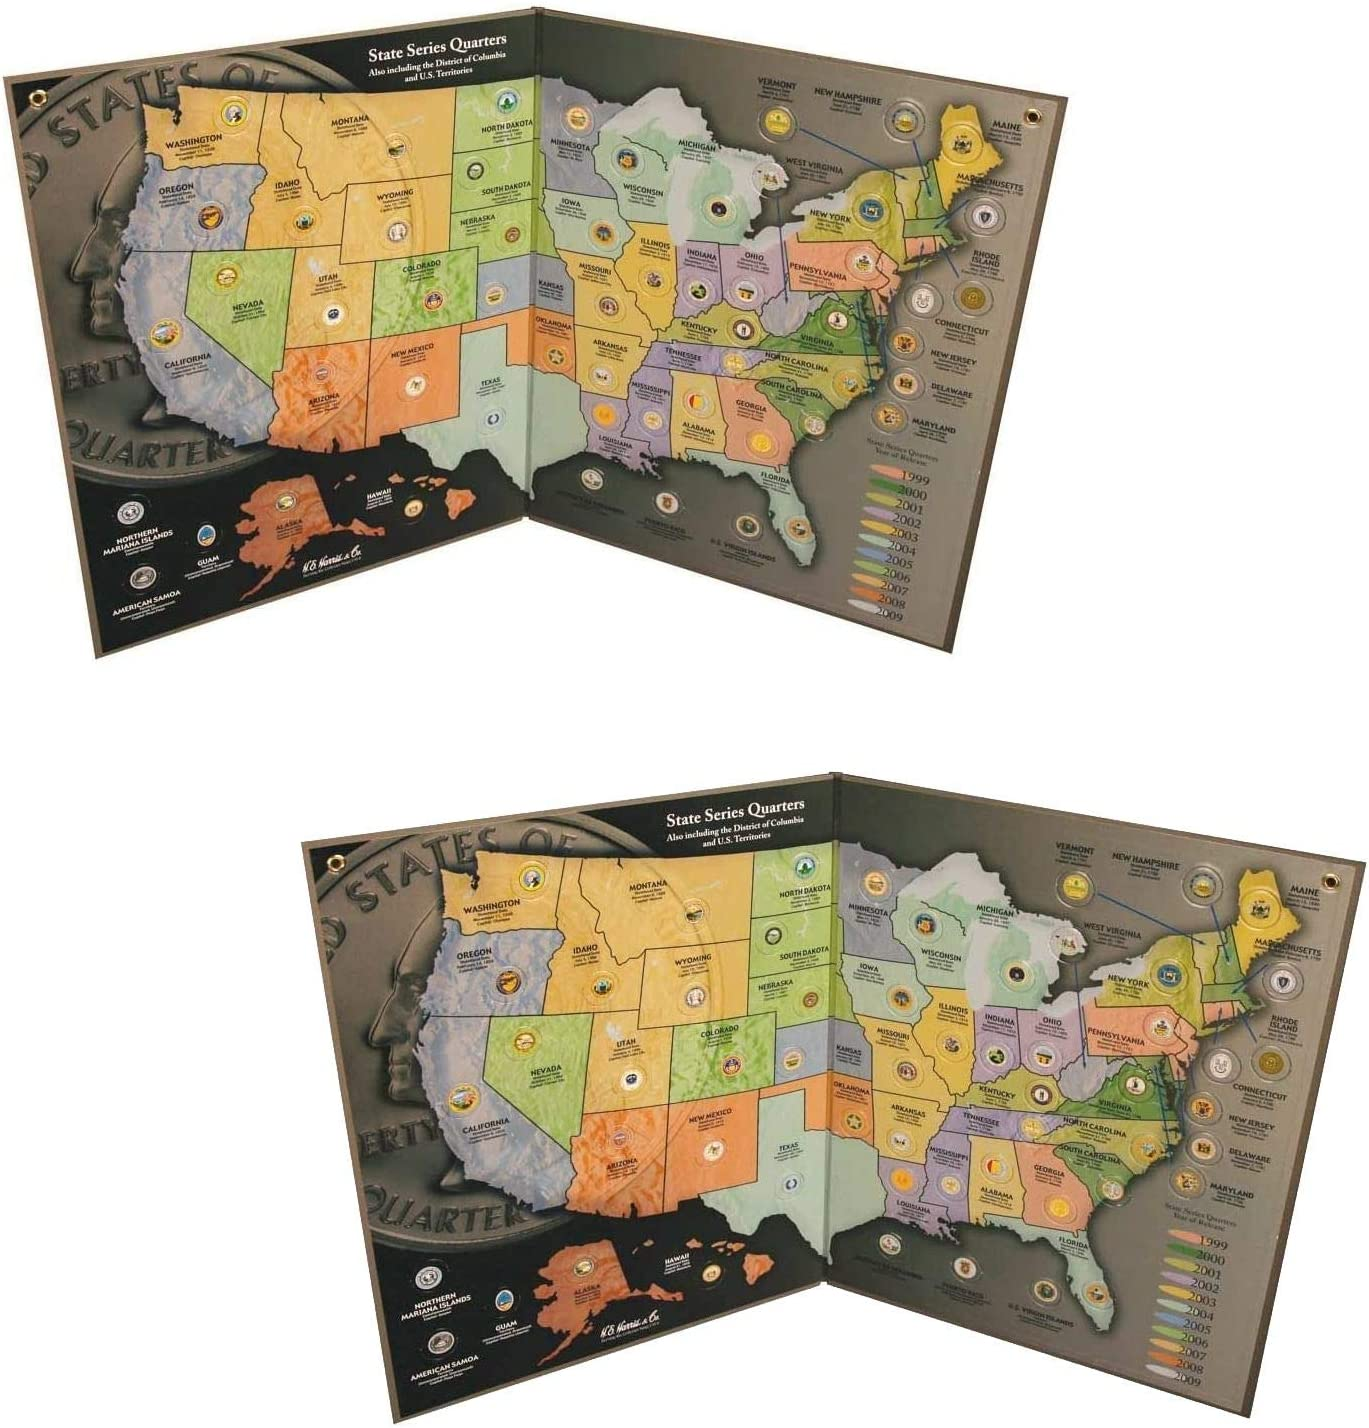 Us State Quarter Map Holder Amazon.com: Coins of America State Quarter Map Double Pack   Us